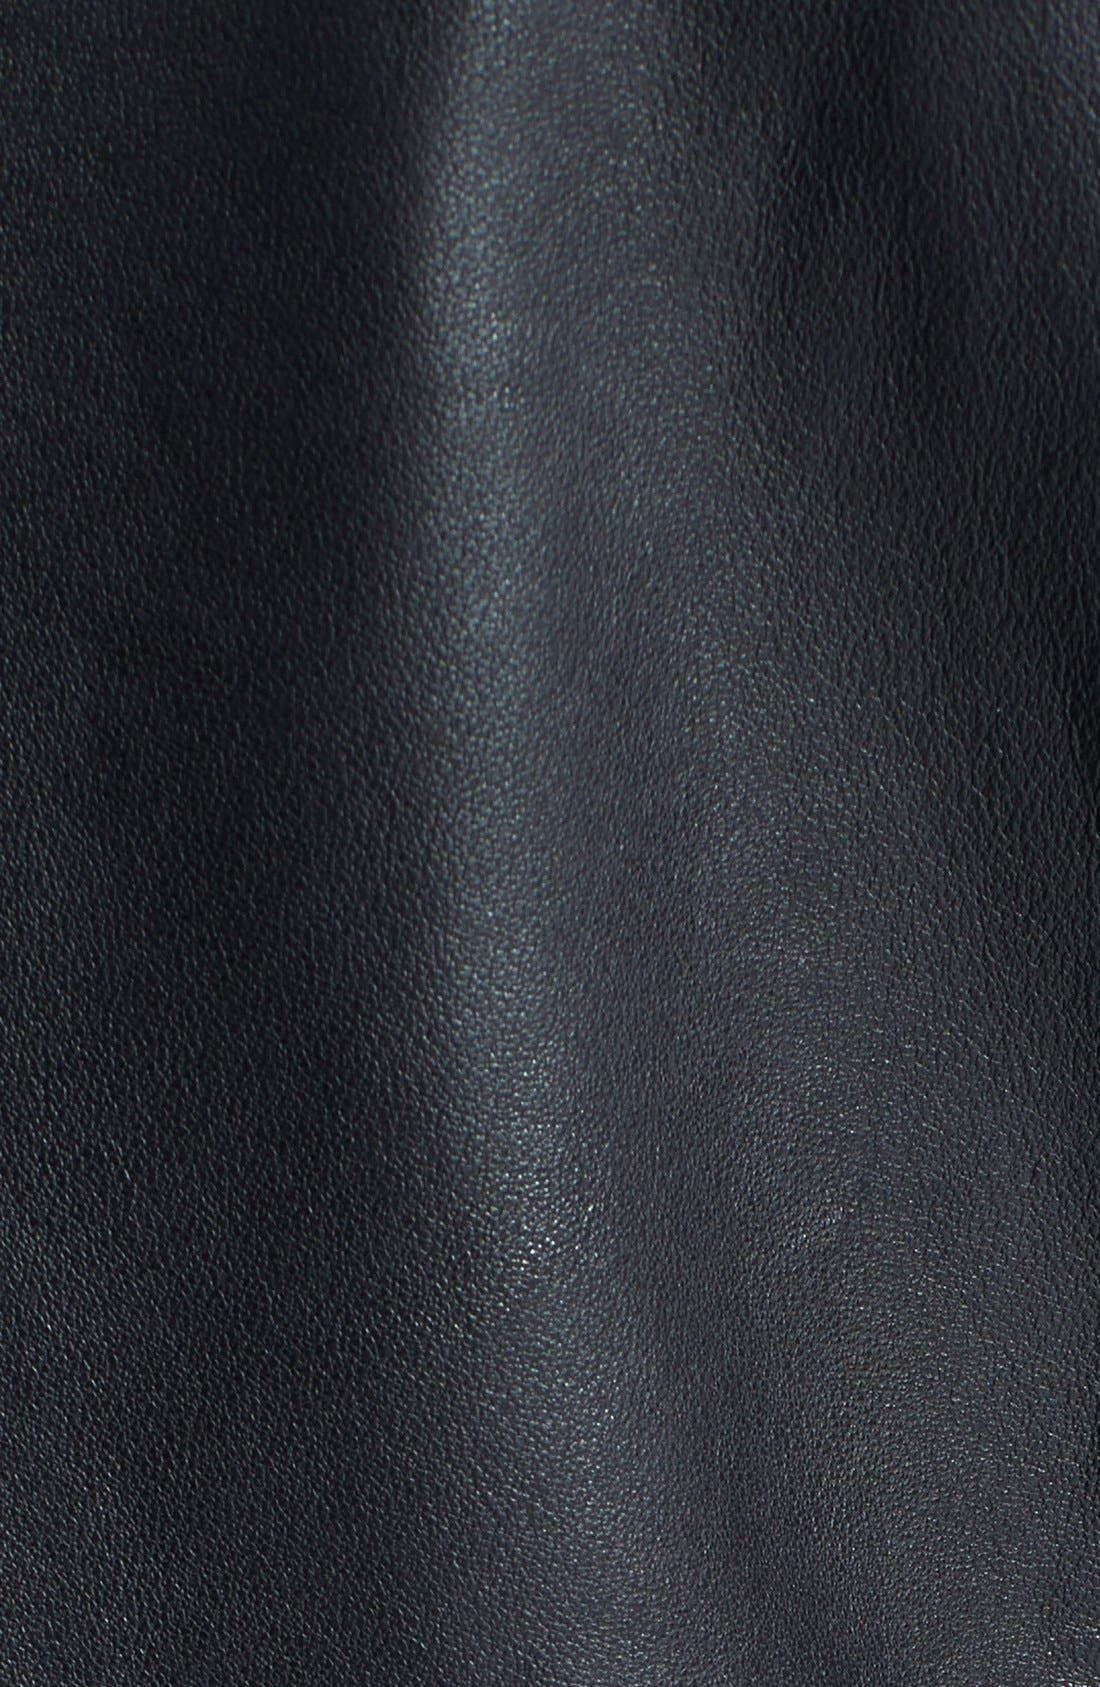 Quilted Leather Jacket,                             Alternate thumbnail 4, color,                             002